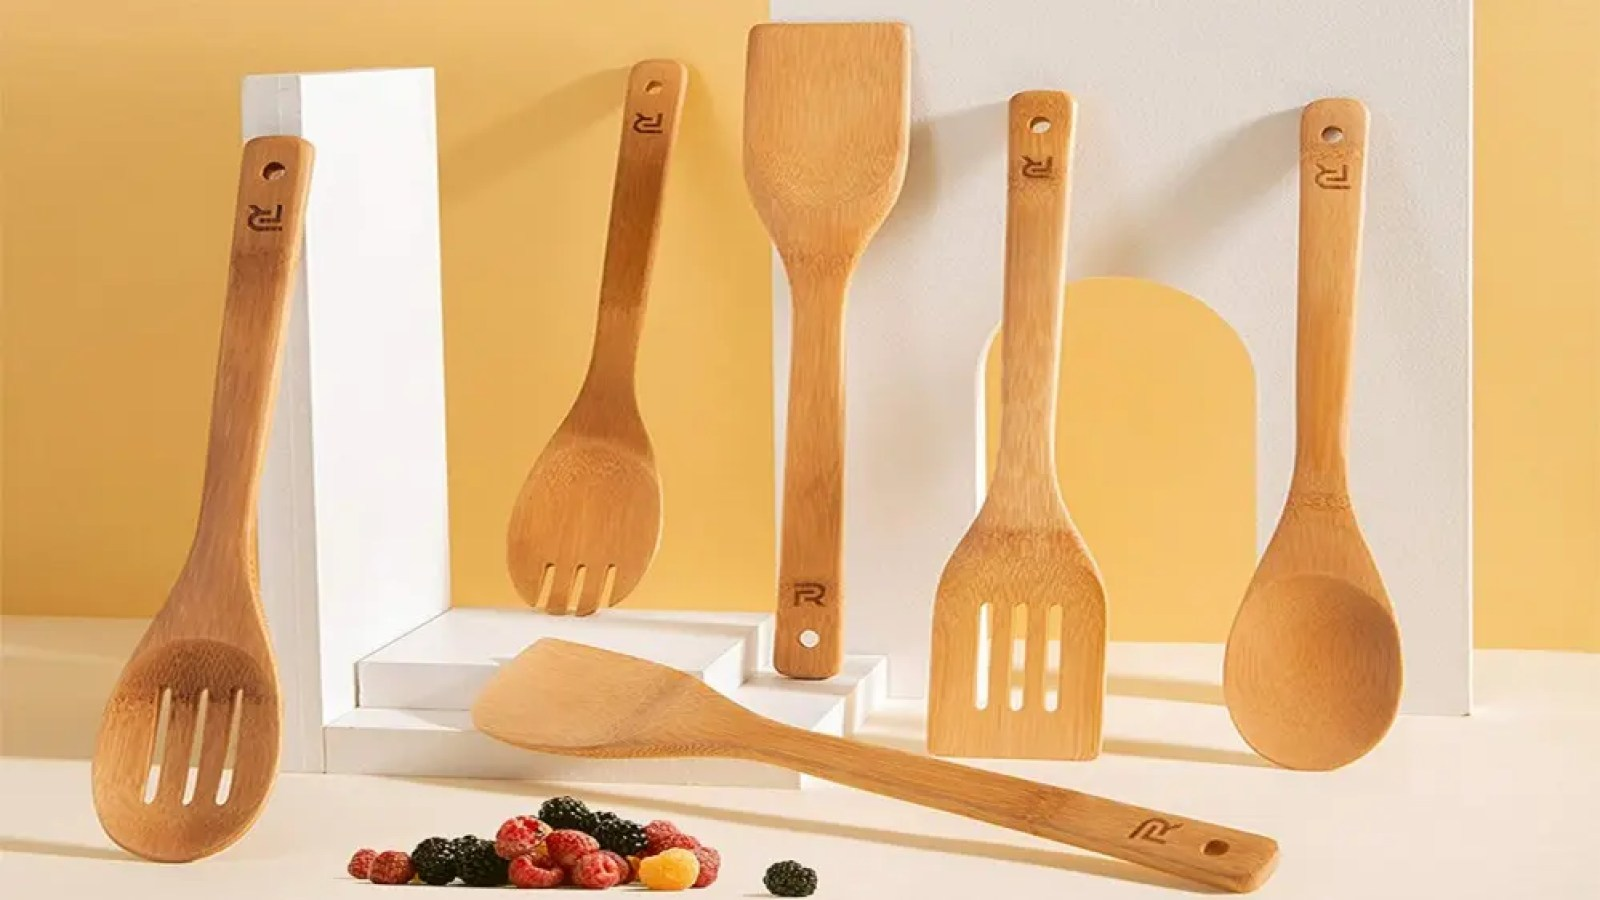 A set of 6 bamboo cooking utensils presented with fresh berries in the front.